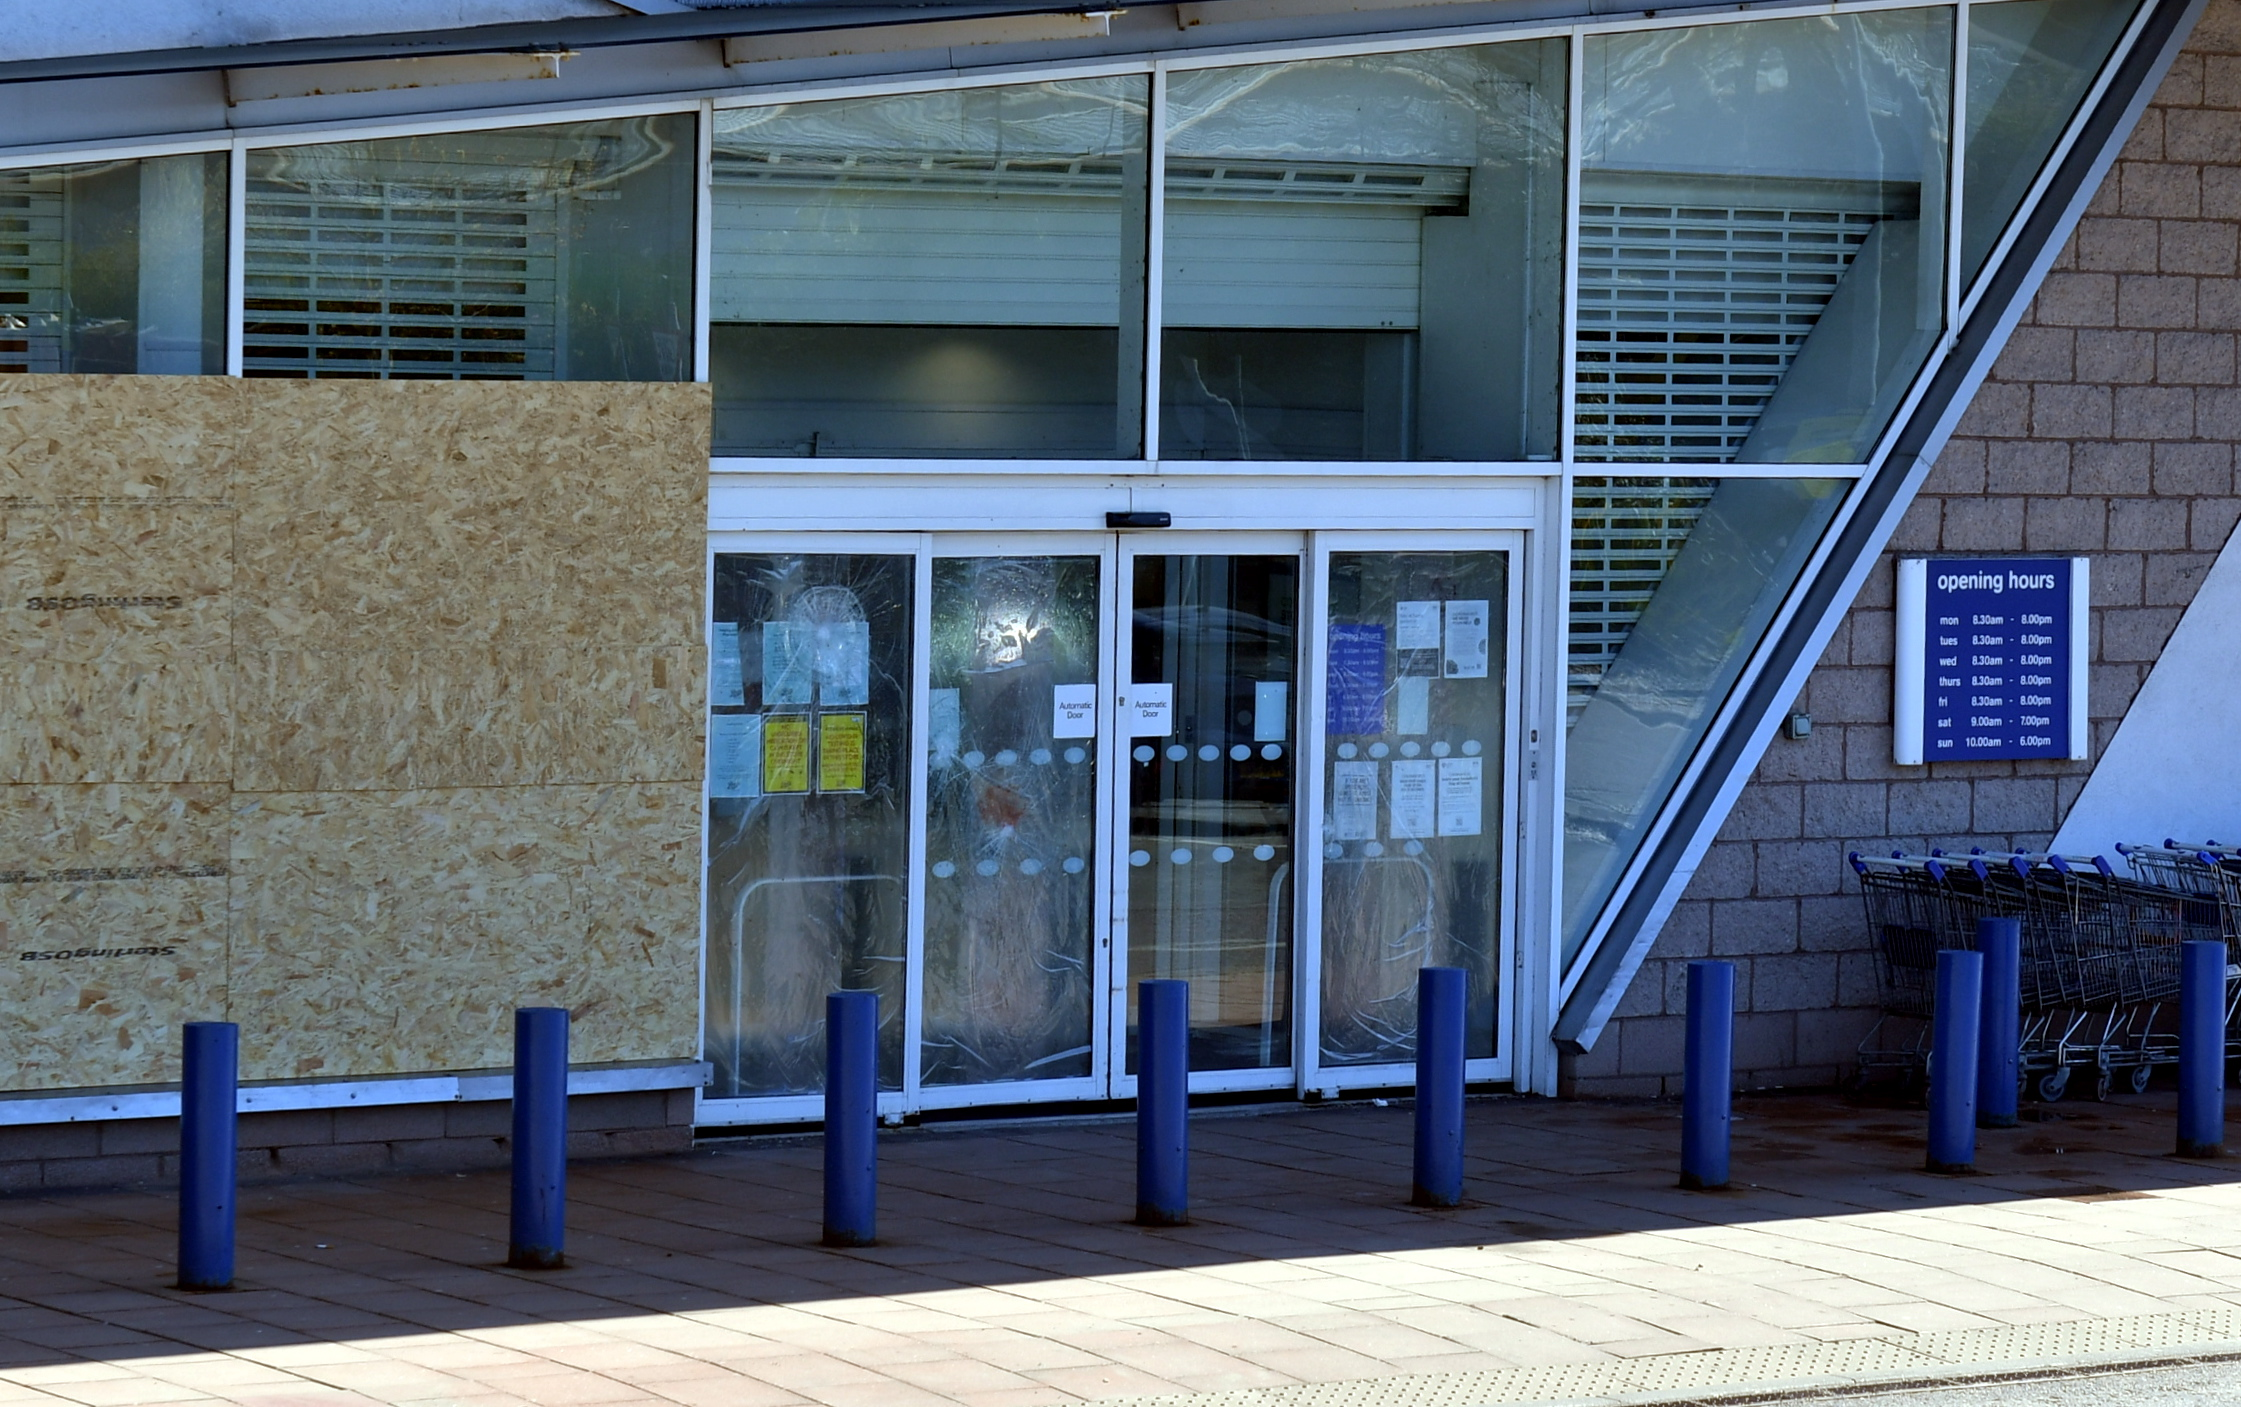 The front of the Boots store in Garthdee was badly damaged